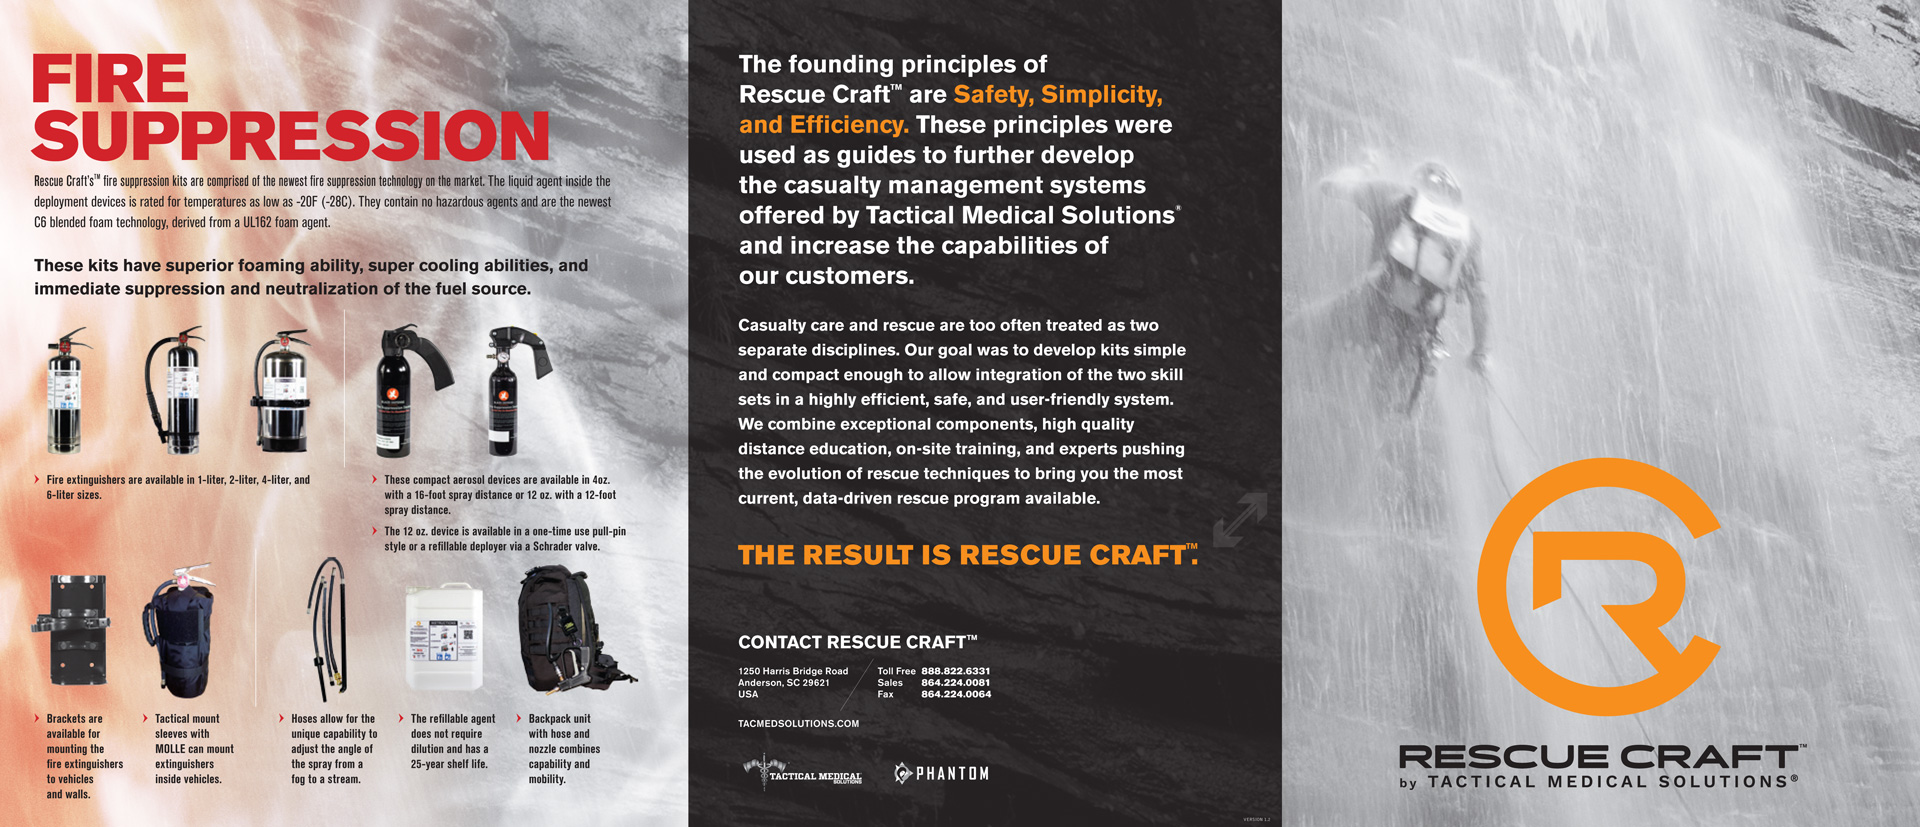 Rescue Craft Logo and Branding